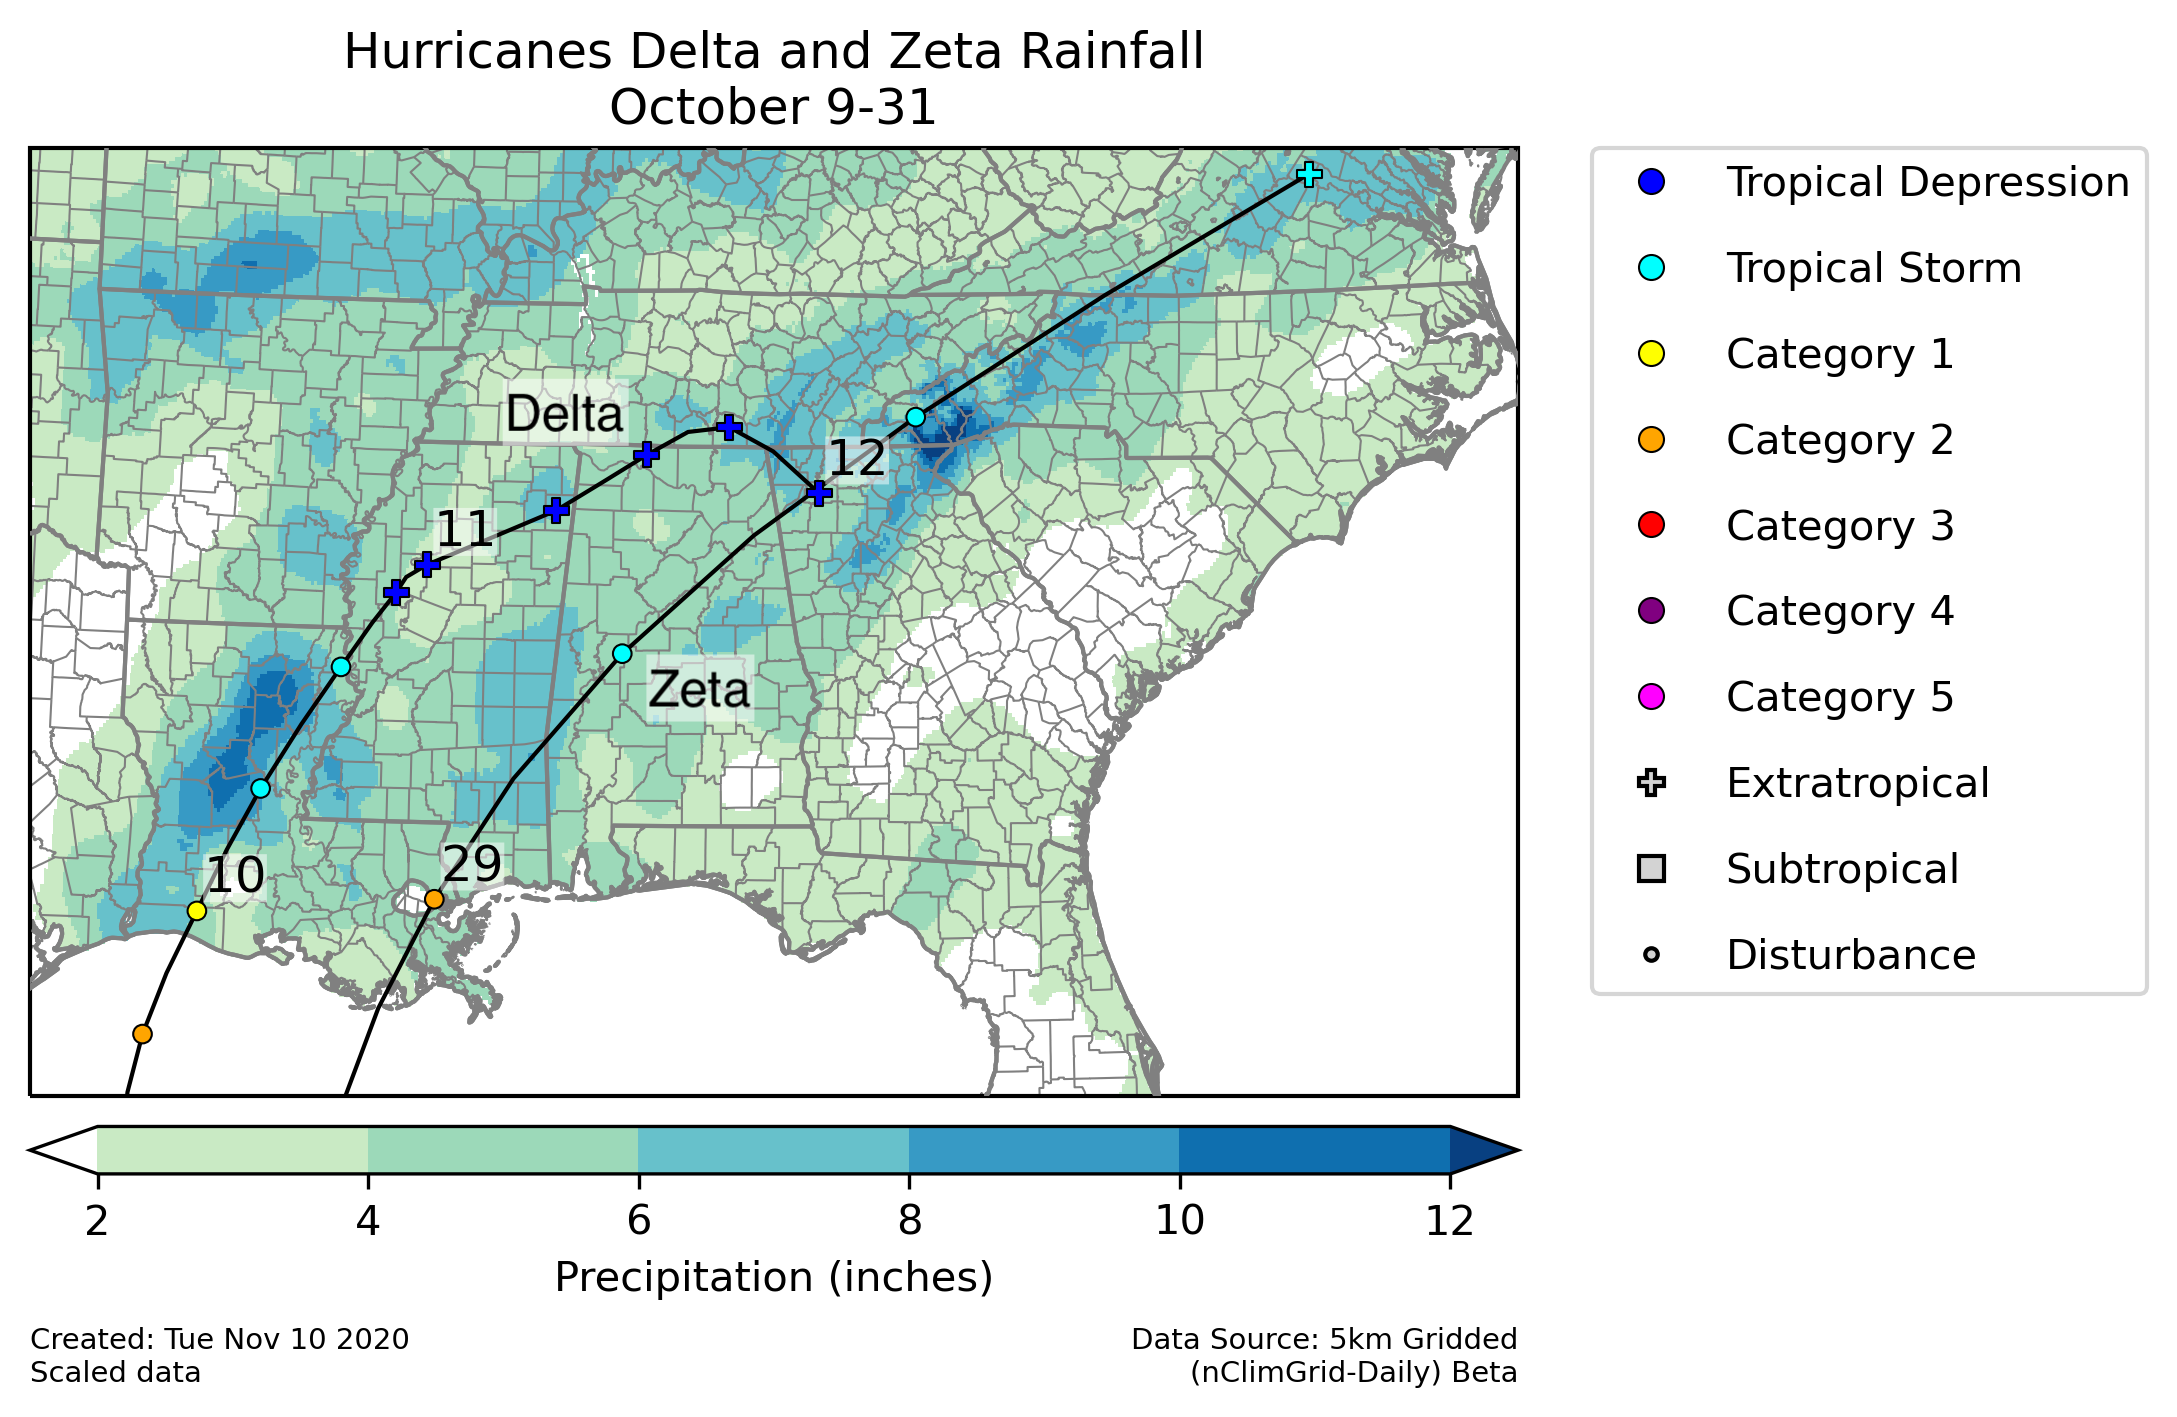 nClimGrid-Daily from Hurricanes Delta and Zeta October 9-31, 2020